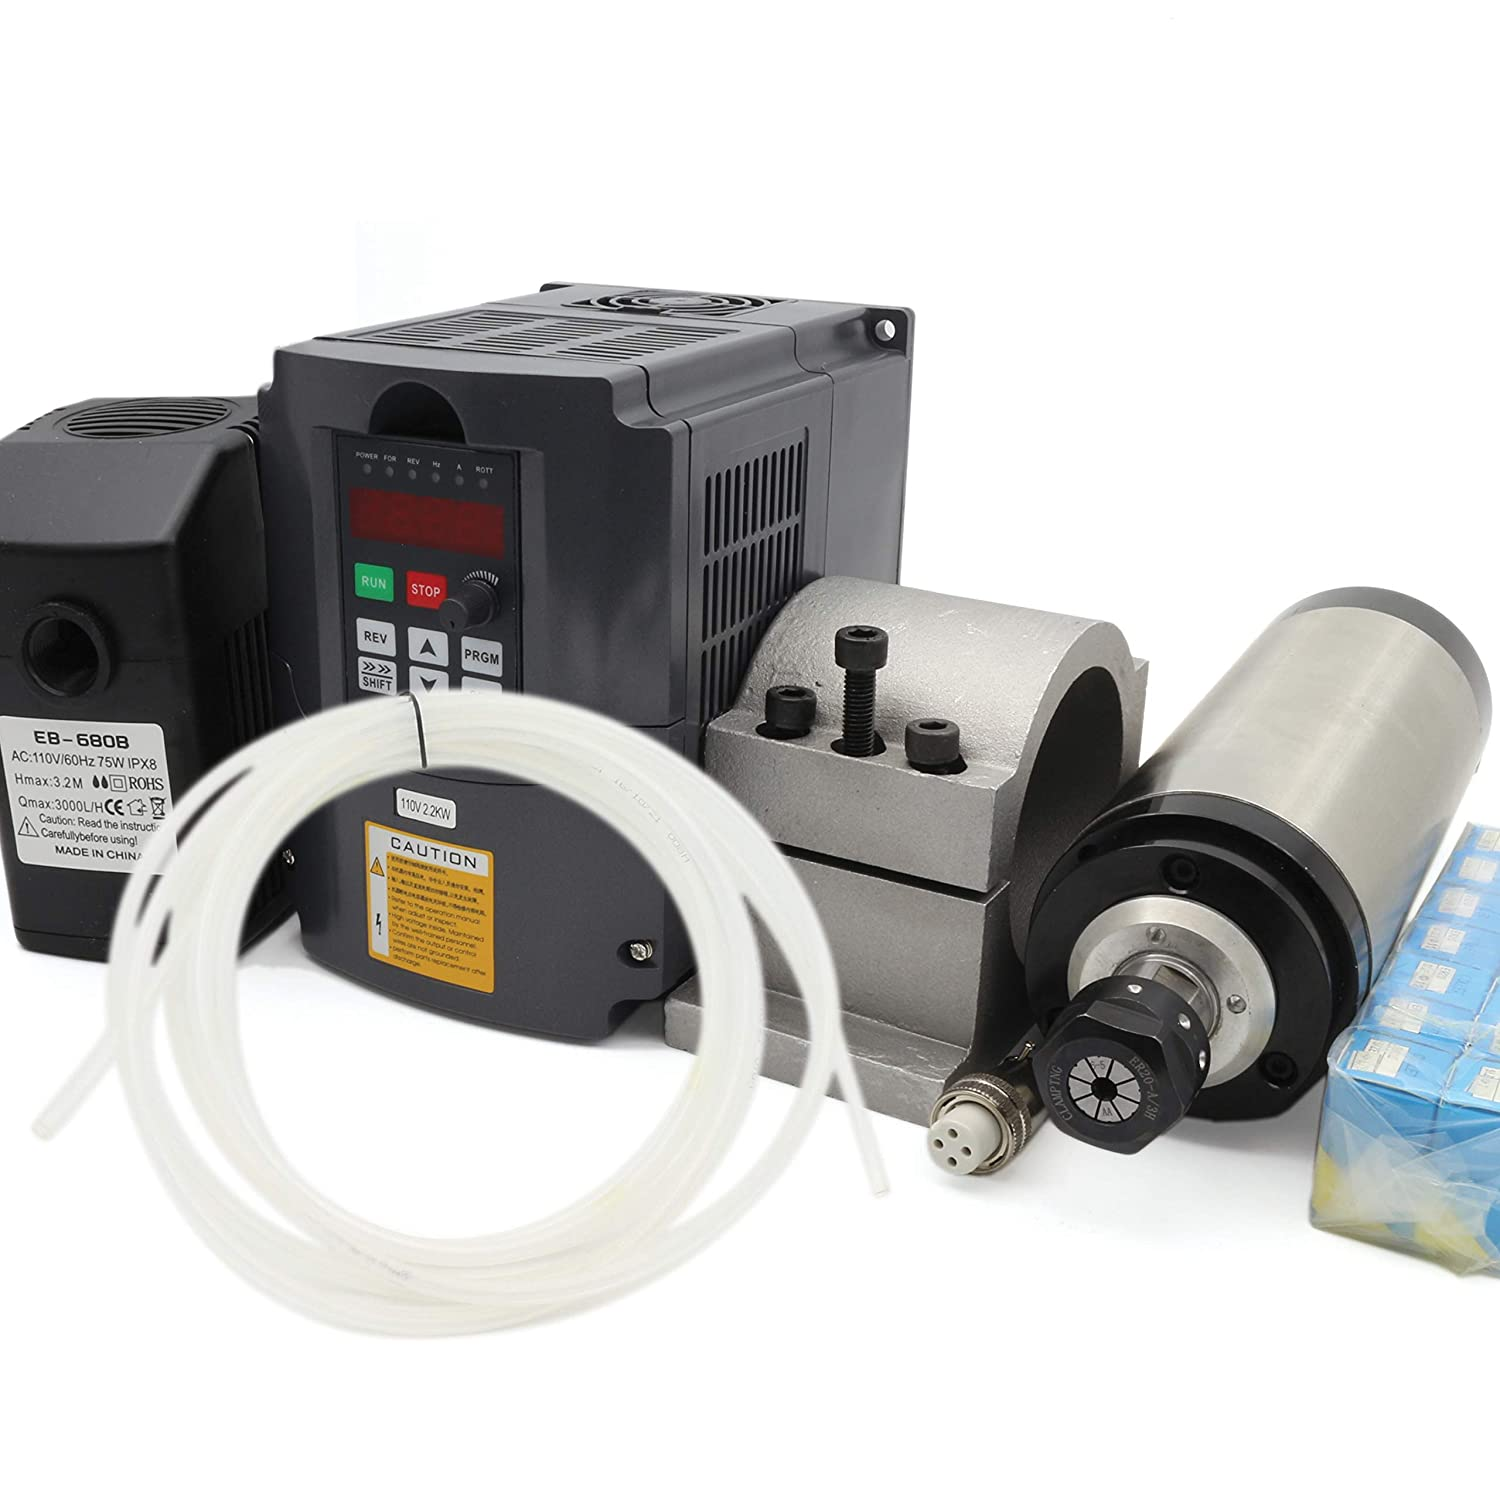 2.2KW Water Cooled Spindle Motor ER20 24000rpm 400Hz+2.2KW VFD Inverter Variable Frequency Driver 110V+80mm Clamp+75W Pump+6m Pipe+14pcs Collet CNC Kit for CNC Router Engraving Milling Machine